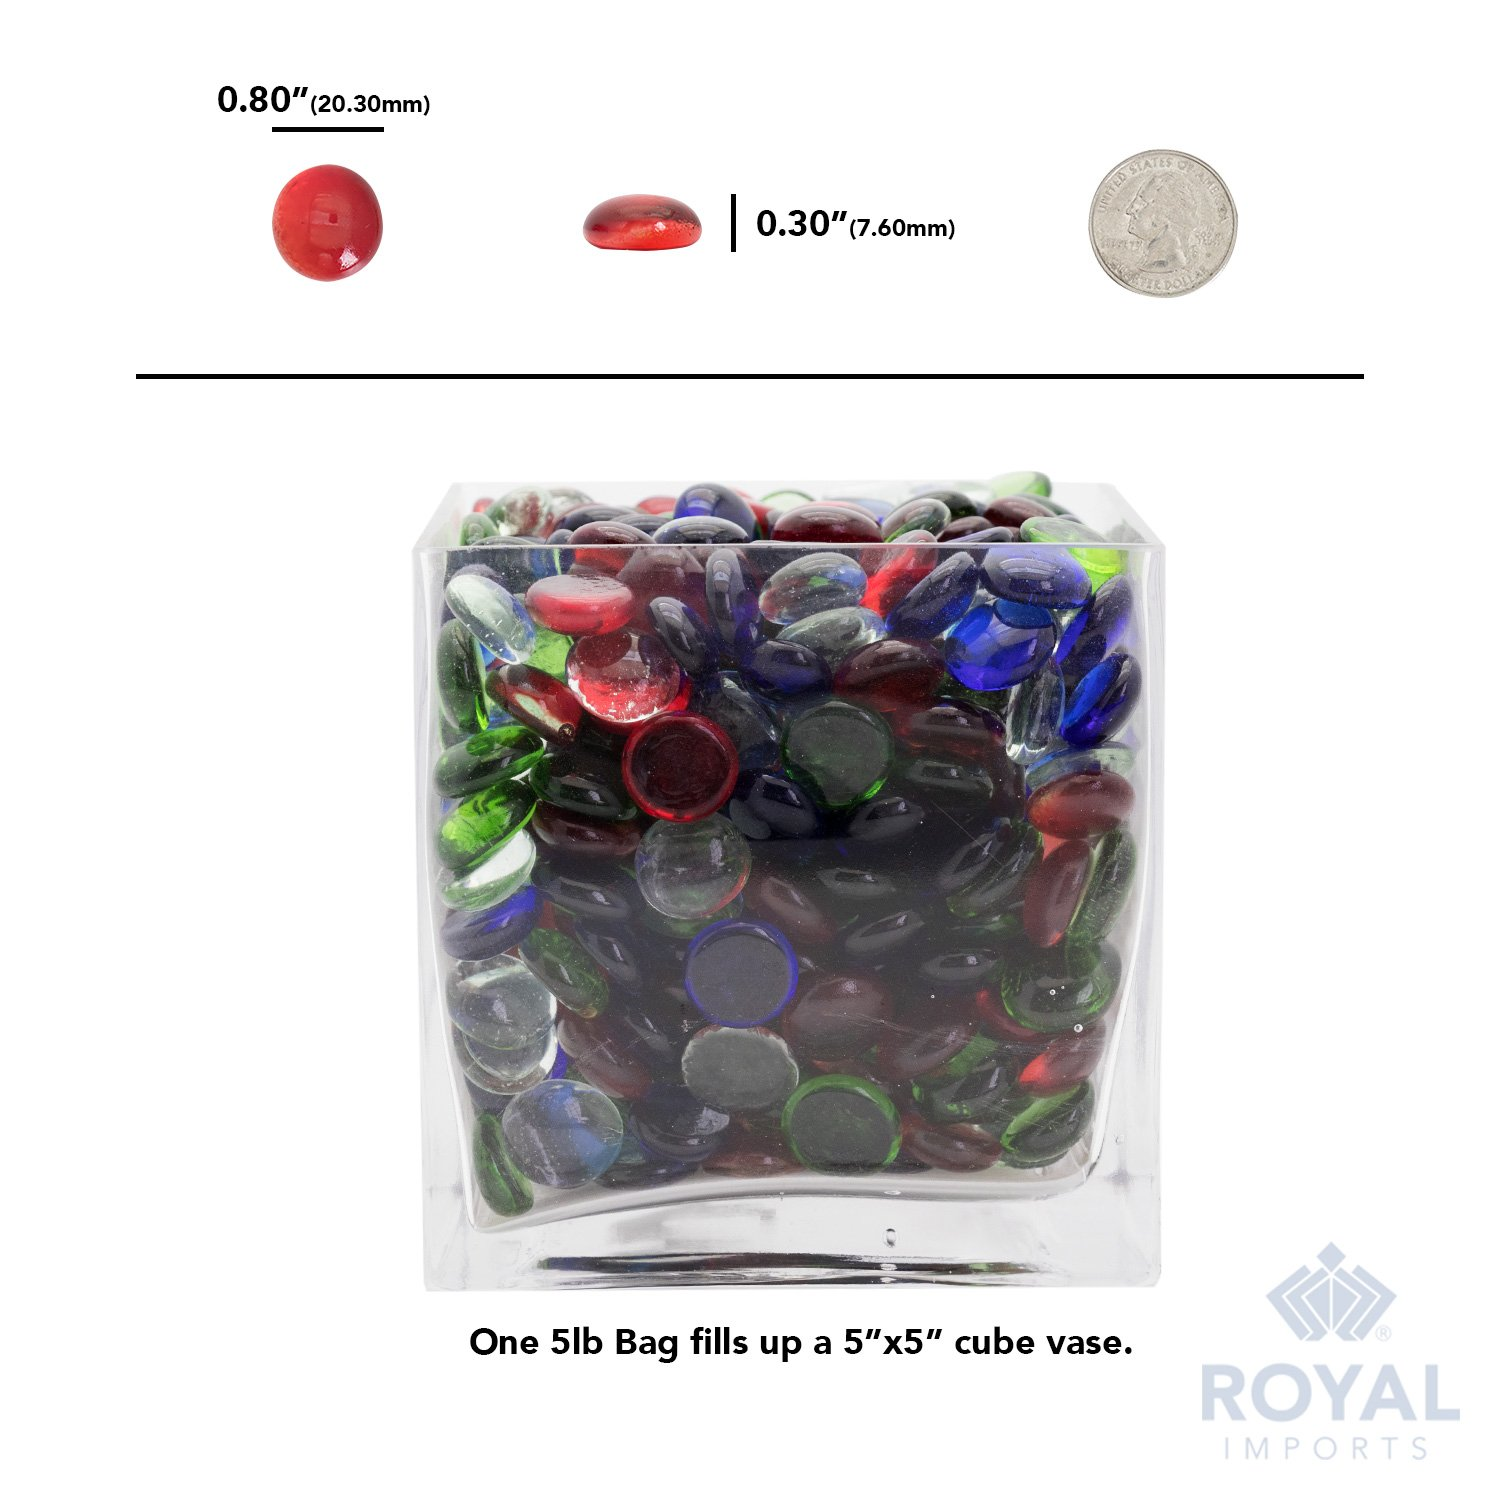 Red Flat Marbles, Pebbles, Glass Gems for Vase Fillers, Party Table Scatter, Wedding, Decoration, Aquarium Decor, Crystal Rocks, or Crafts by Royal Imports, 5 LBS (Approx 400 pcs) by Royal Imports (Image #6)